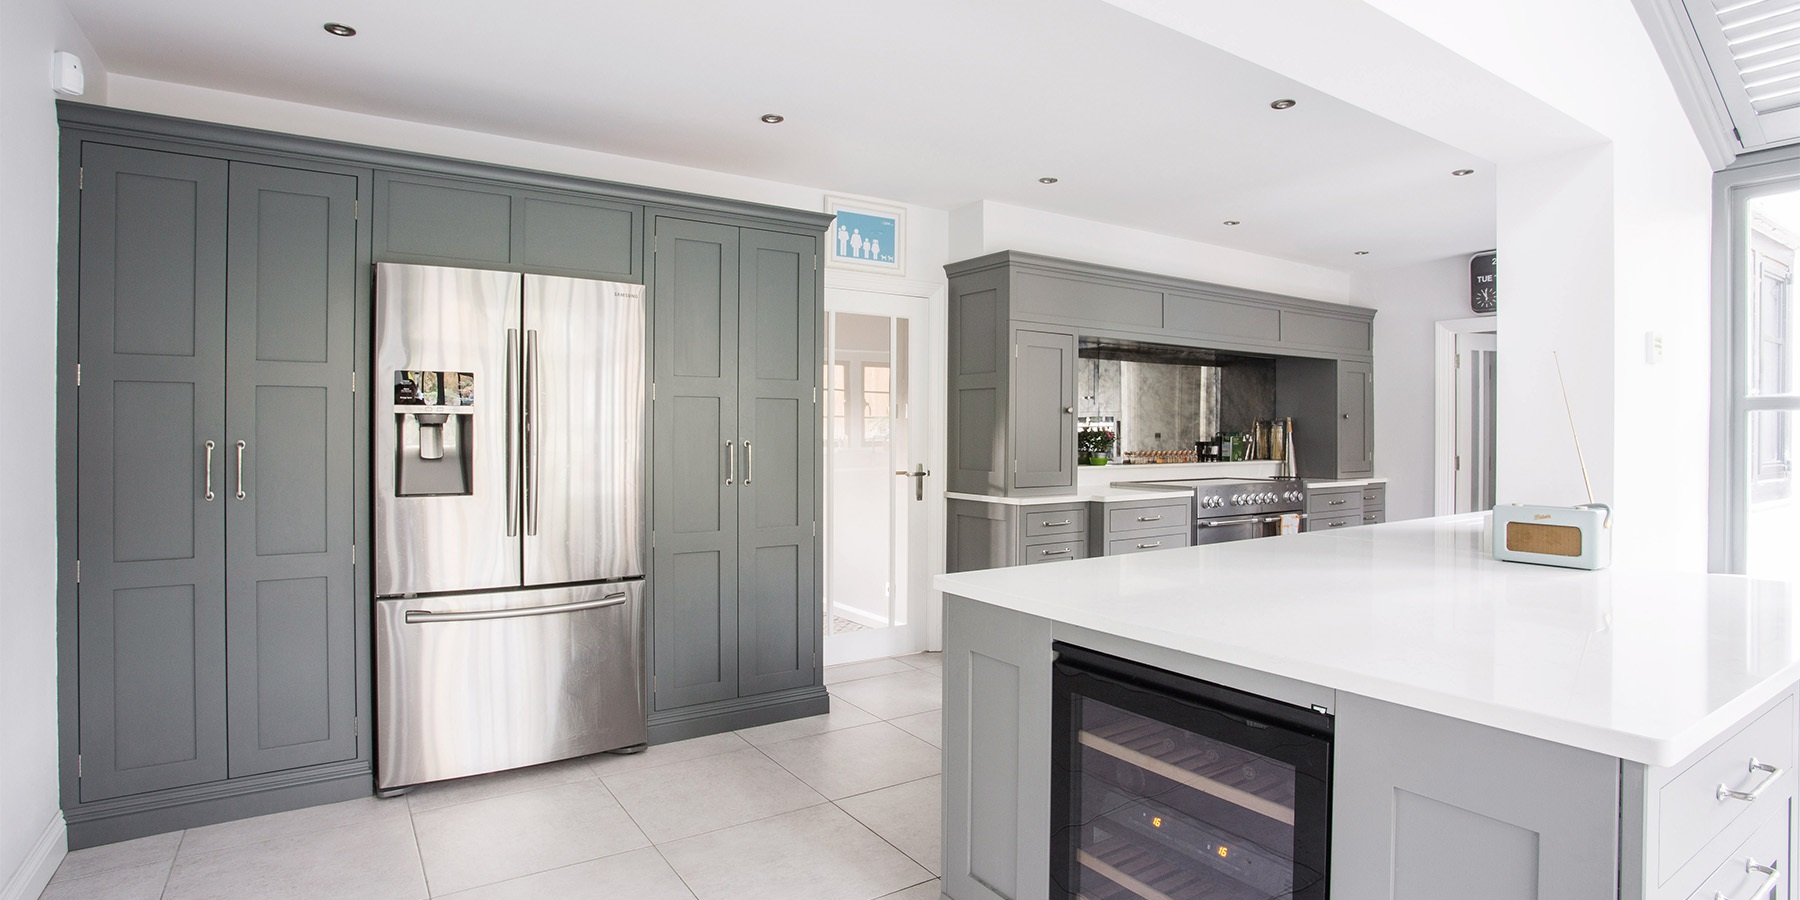 Burlanes Interiors - Classic shaker style kitchens, bespoke and handmade in Kent: Hoyden